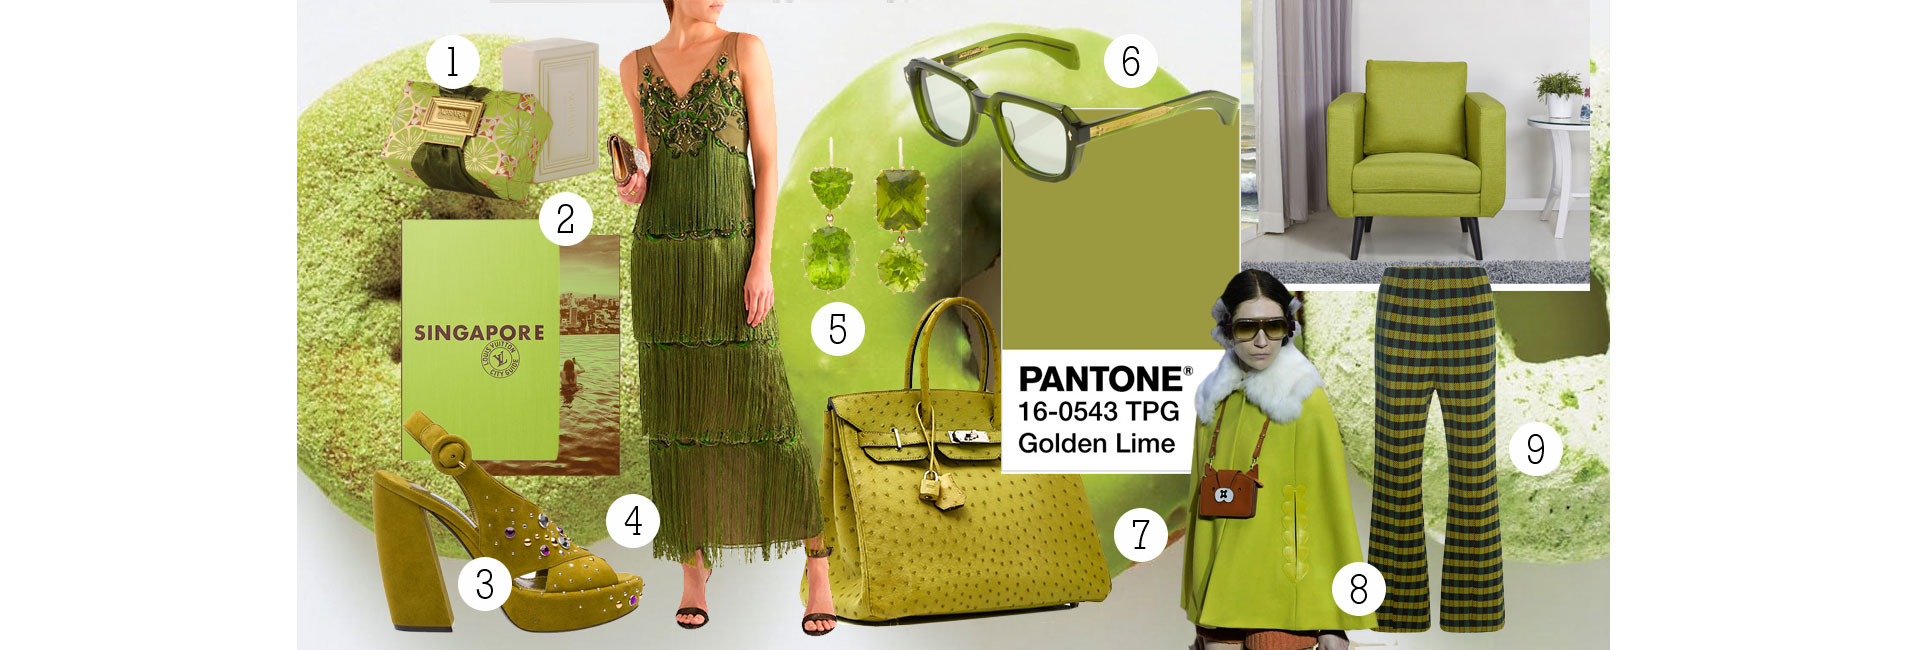 10-goldel-lime-pantone-colour